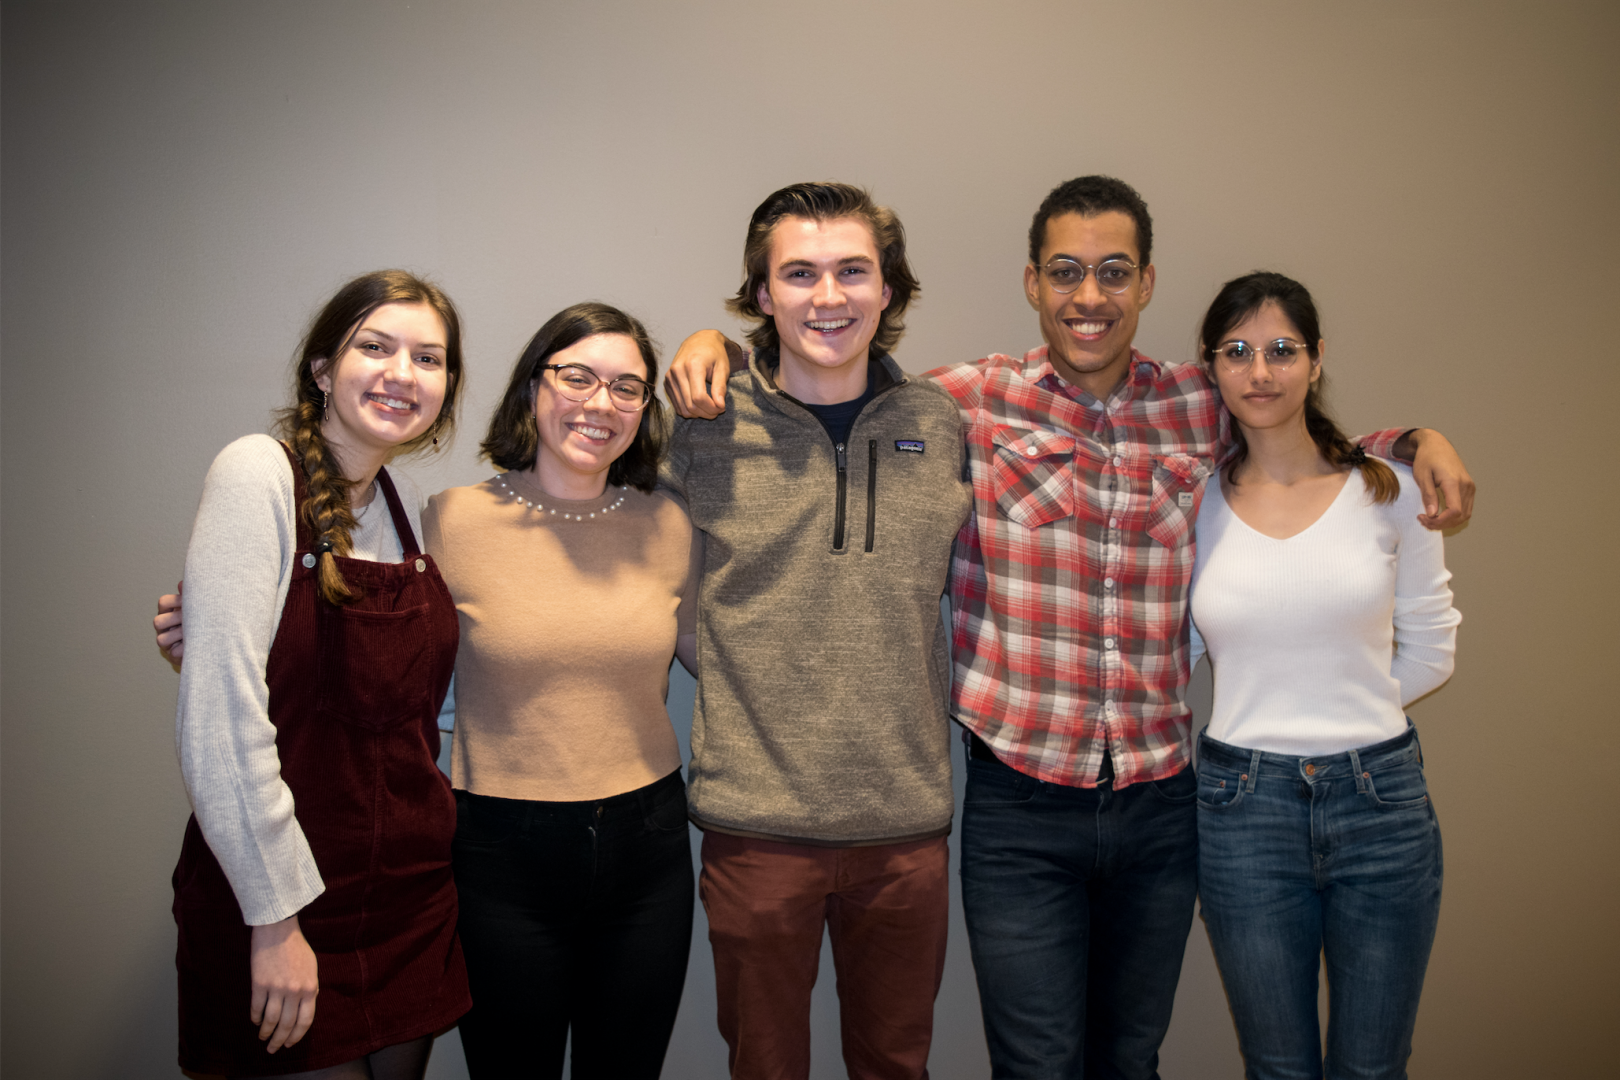 (left to right) RHA Representatives Samantha Umani, FCLC '21, Lucia Vacchiano, FCLC '20, Andrew Beecher, FCLC '21, Samuel Blackwood, FCLC '19, and Cristina Mendez, FCLC '19 worked to draft the new proposal. (LENA ROSE/THE OBSERVER)